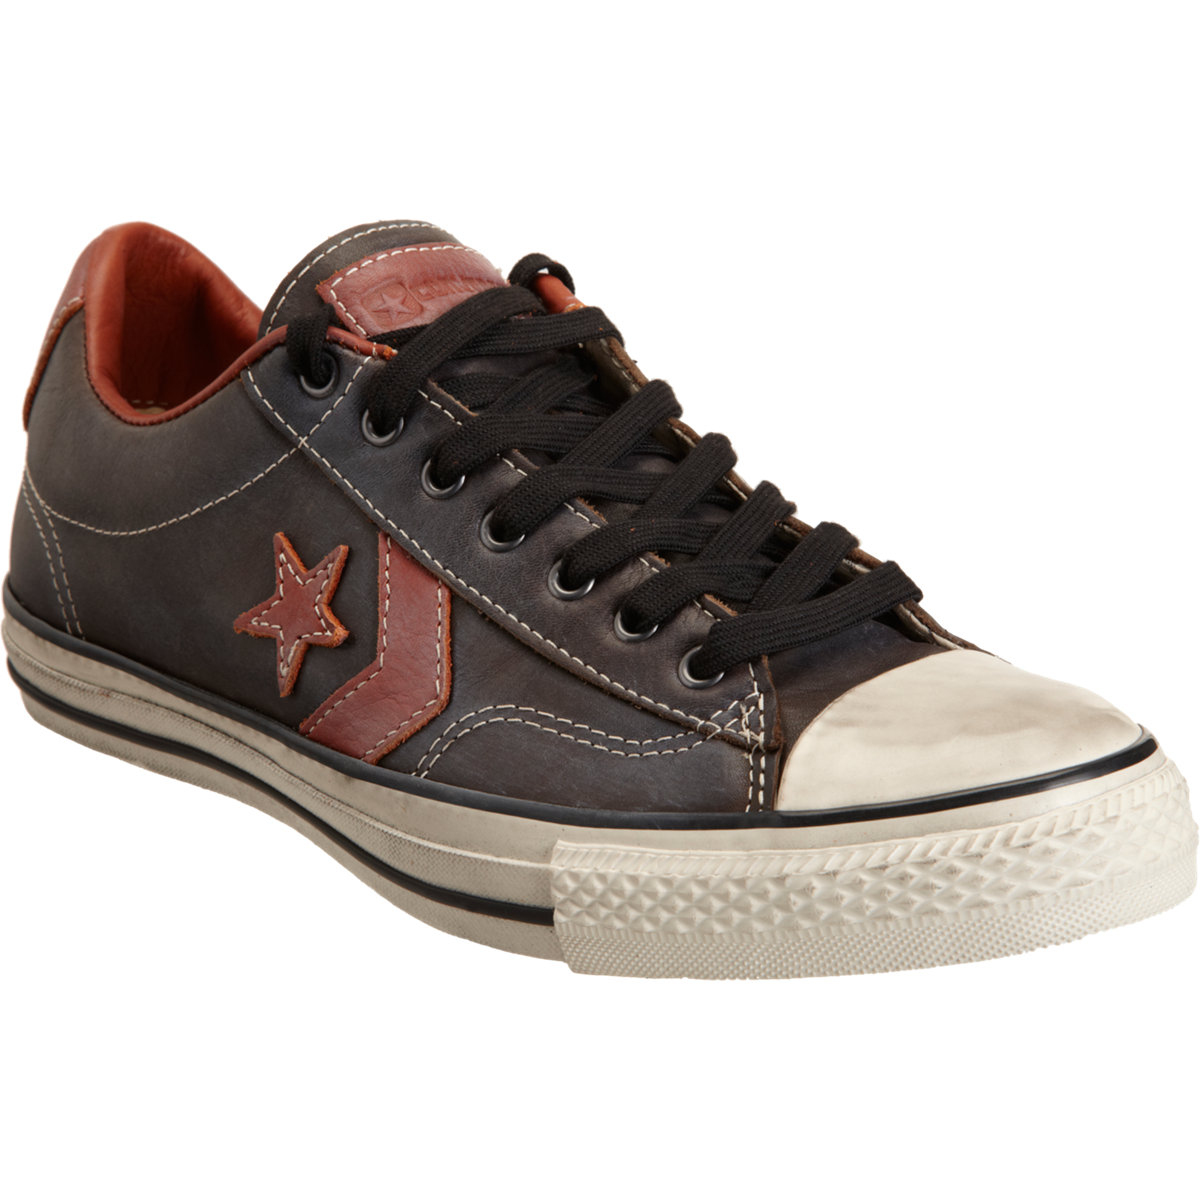 74d01d844602 ... australia converse star player lowtop in brown for men lyst a634c 0ec49